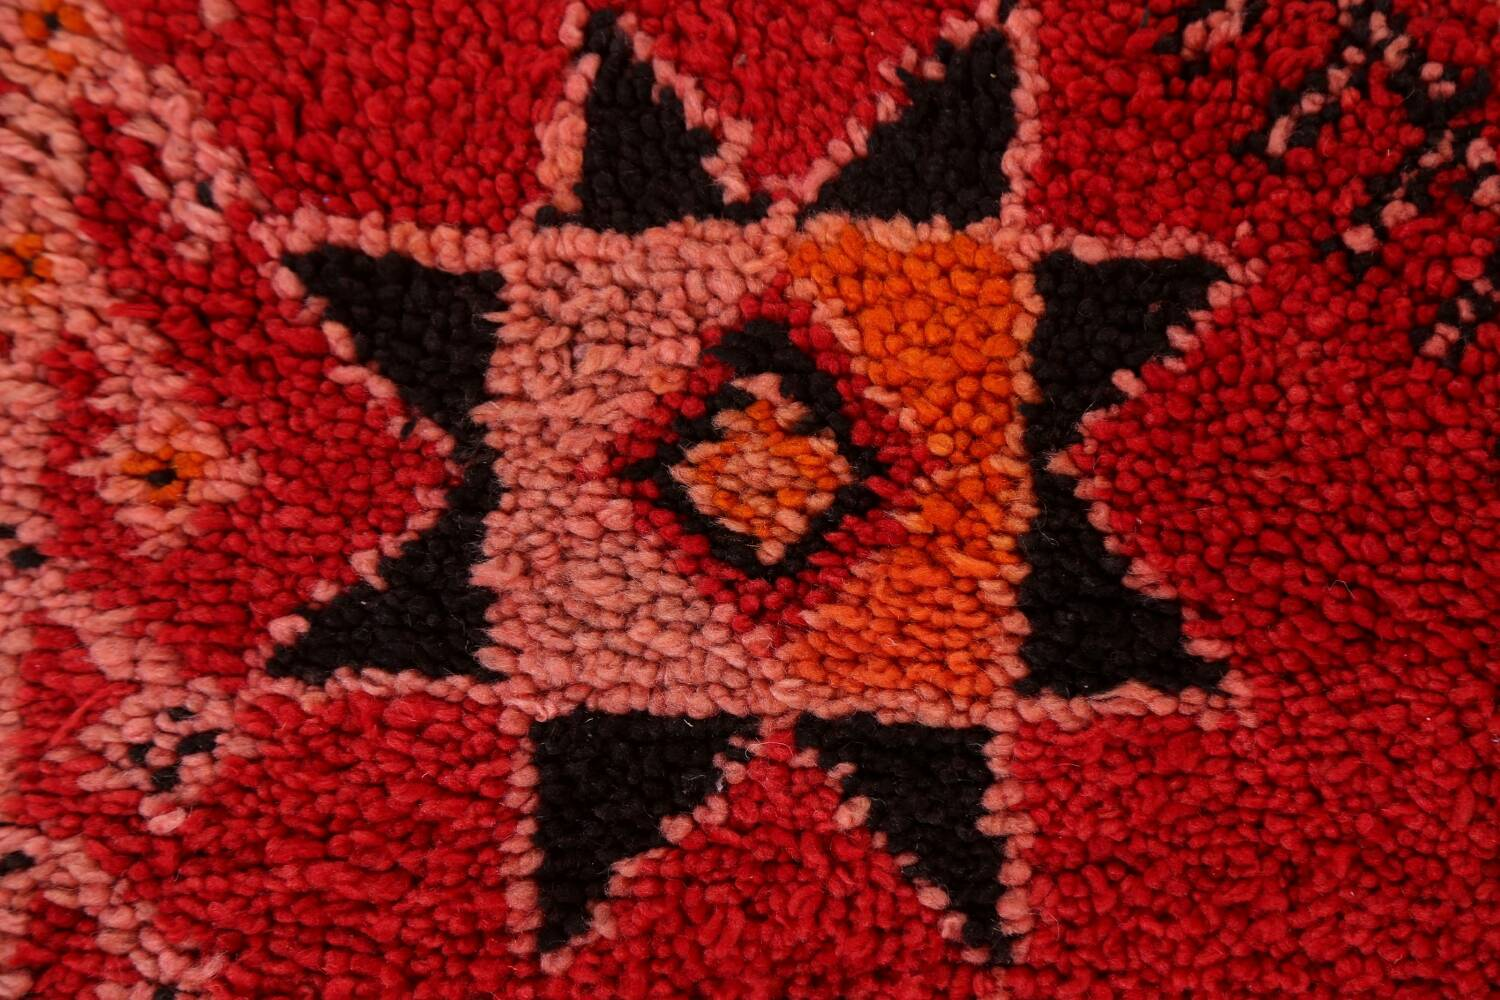 Red Moroccan Berber Area Rug 6x11 image 8